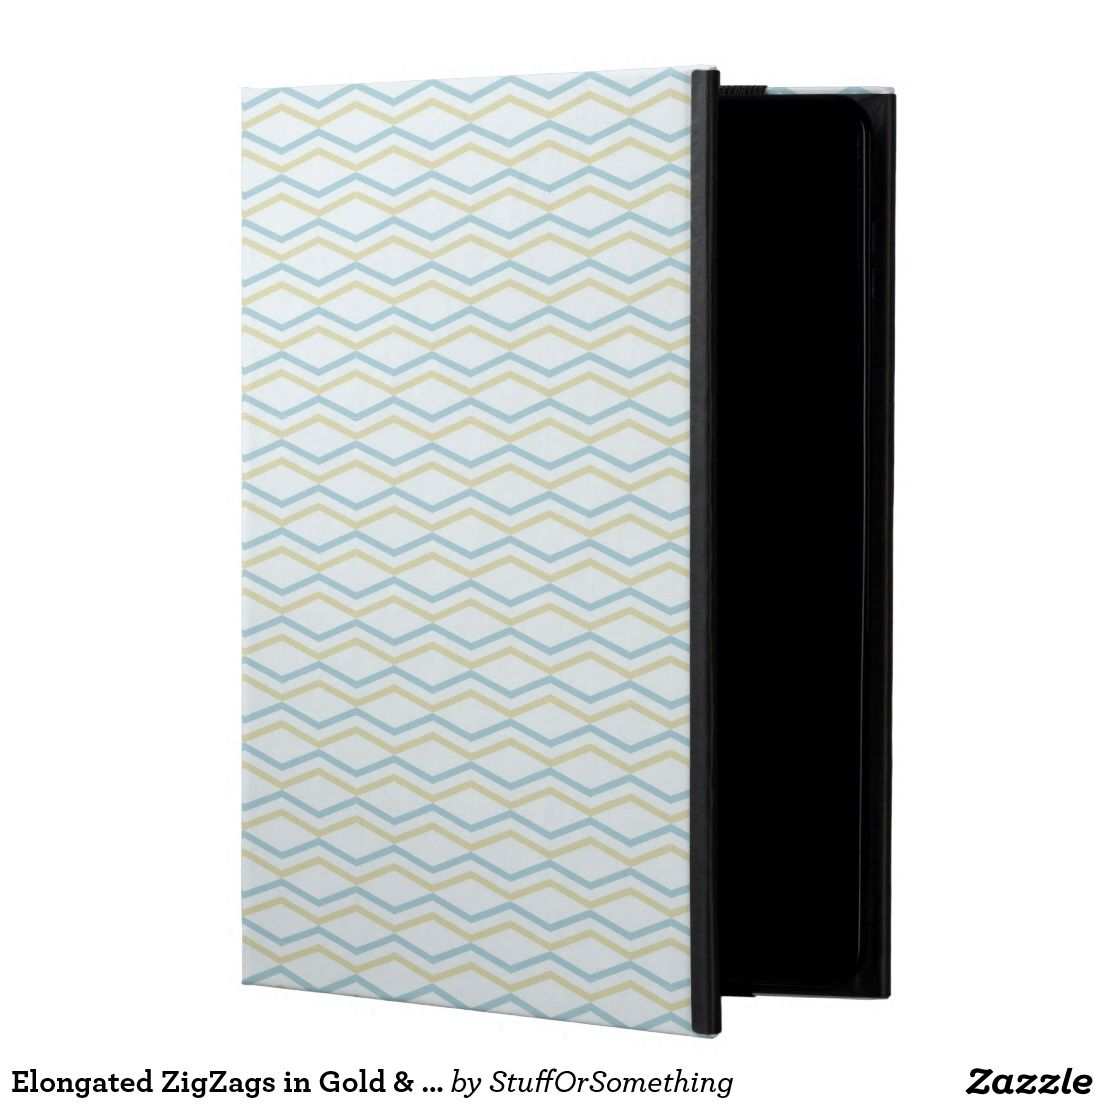 Elongated ZigZags in Gold & Blue Cover For iPad Air